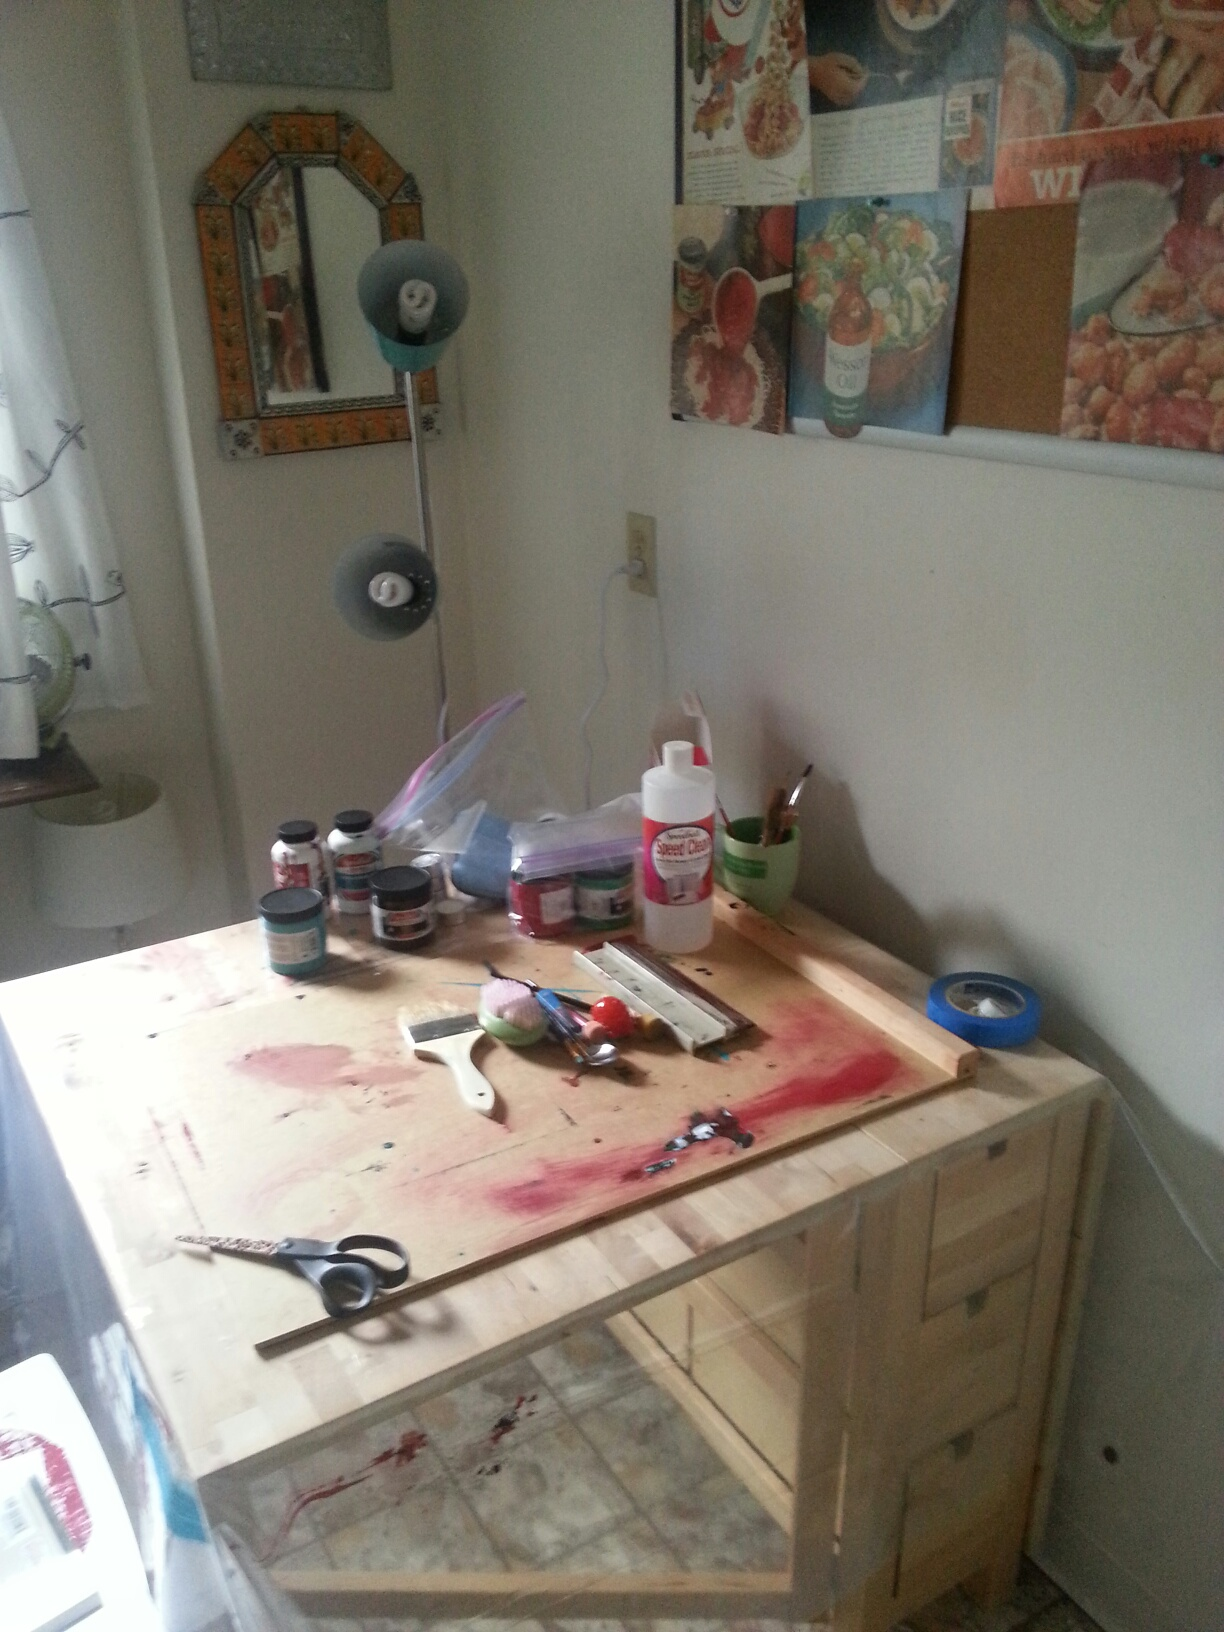 Kitchen Table Workspace Clutter